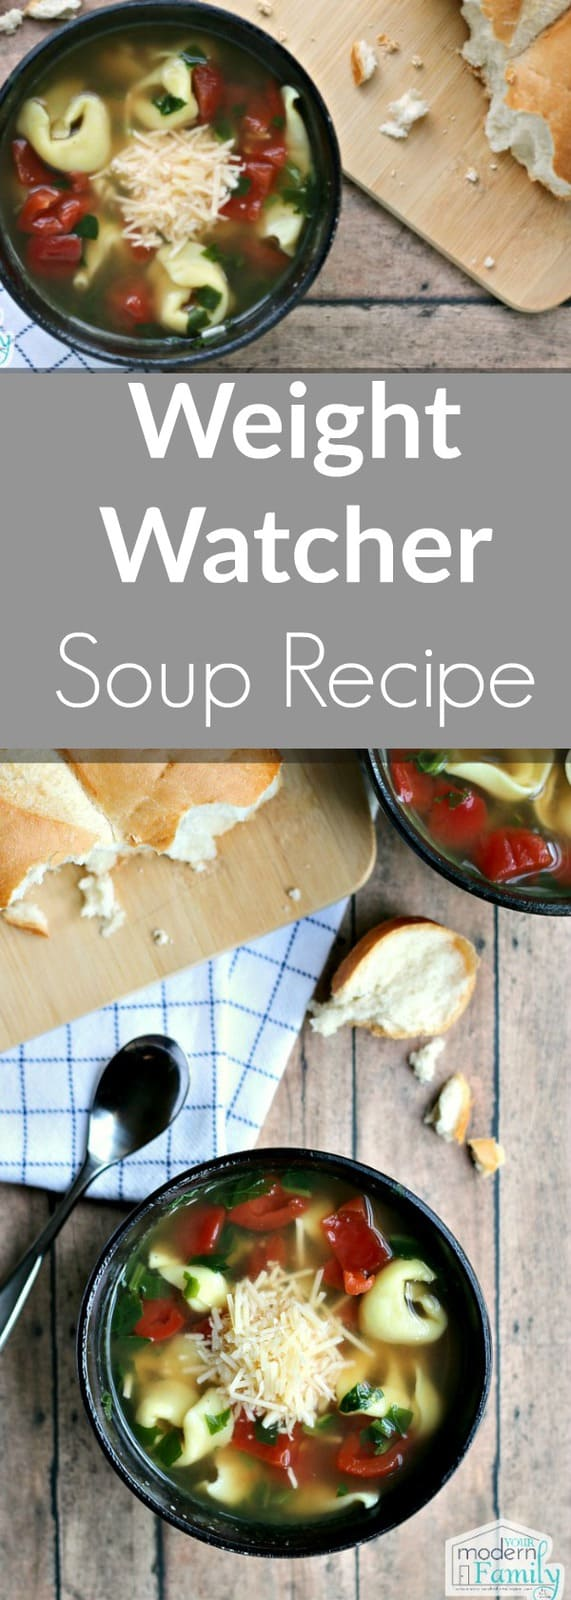 Weight Watcher Spinach Soup Recipe